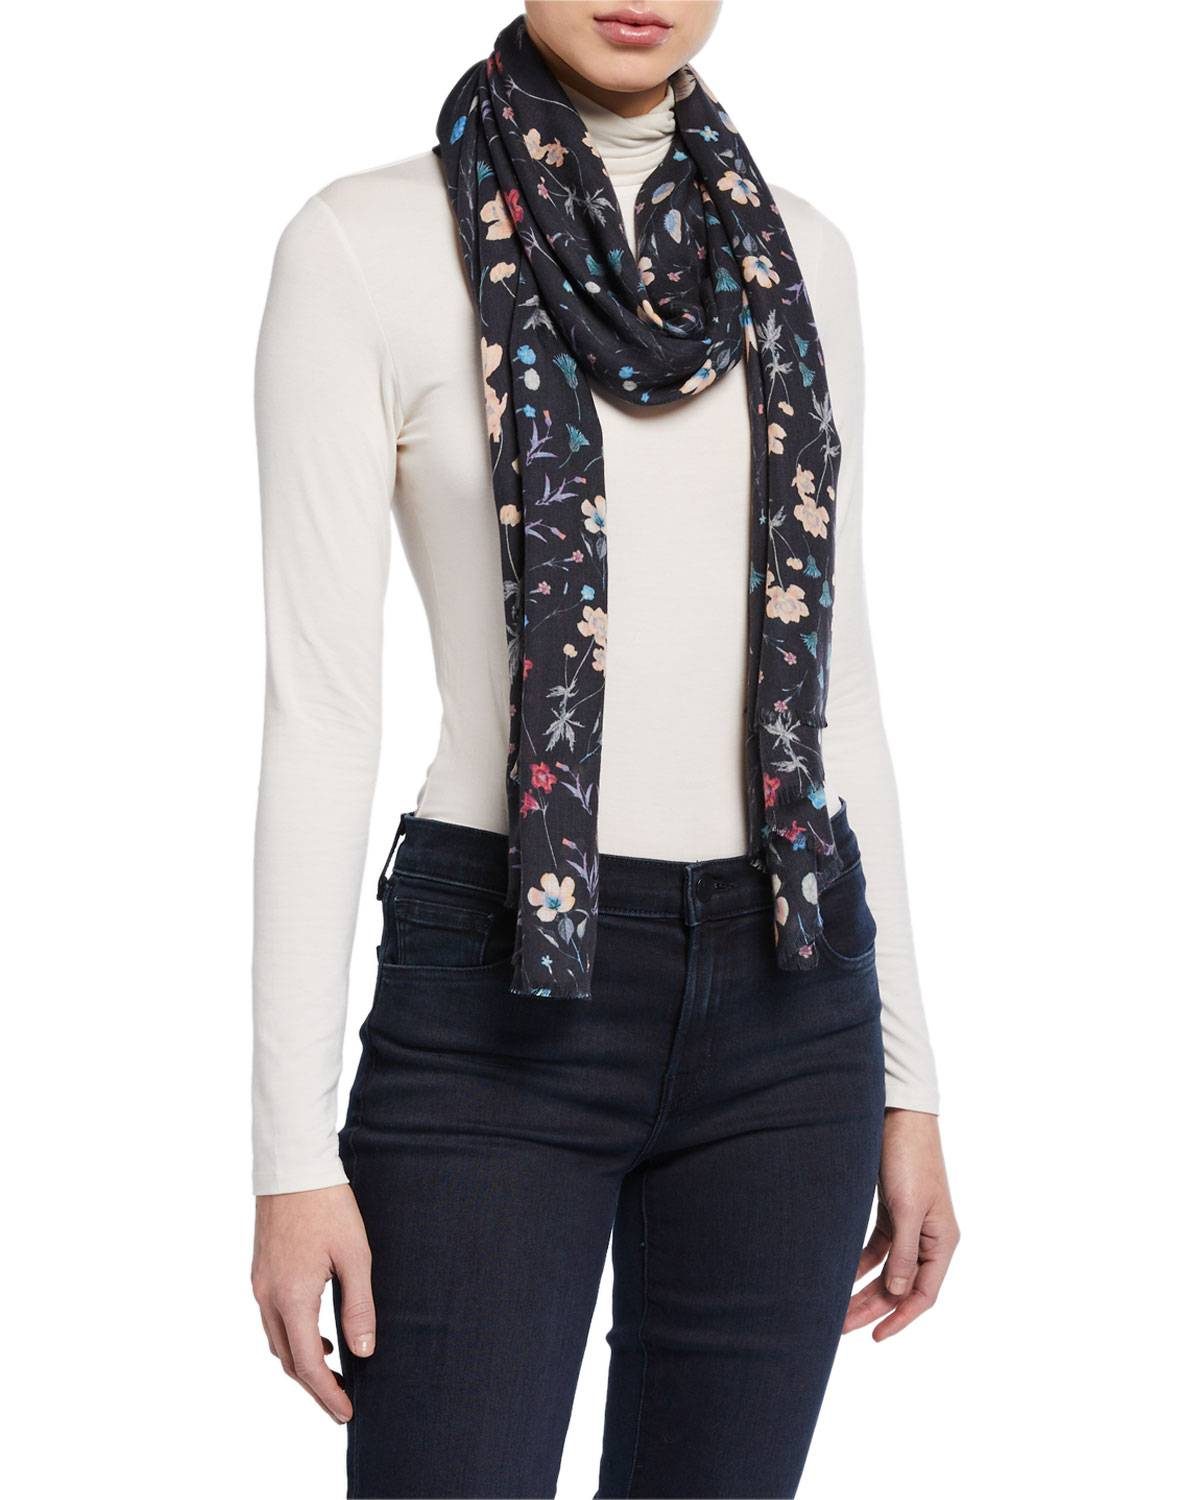 Lily and Lionel Night Garden Modal-Cashmere Scarf  - female - BLACK